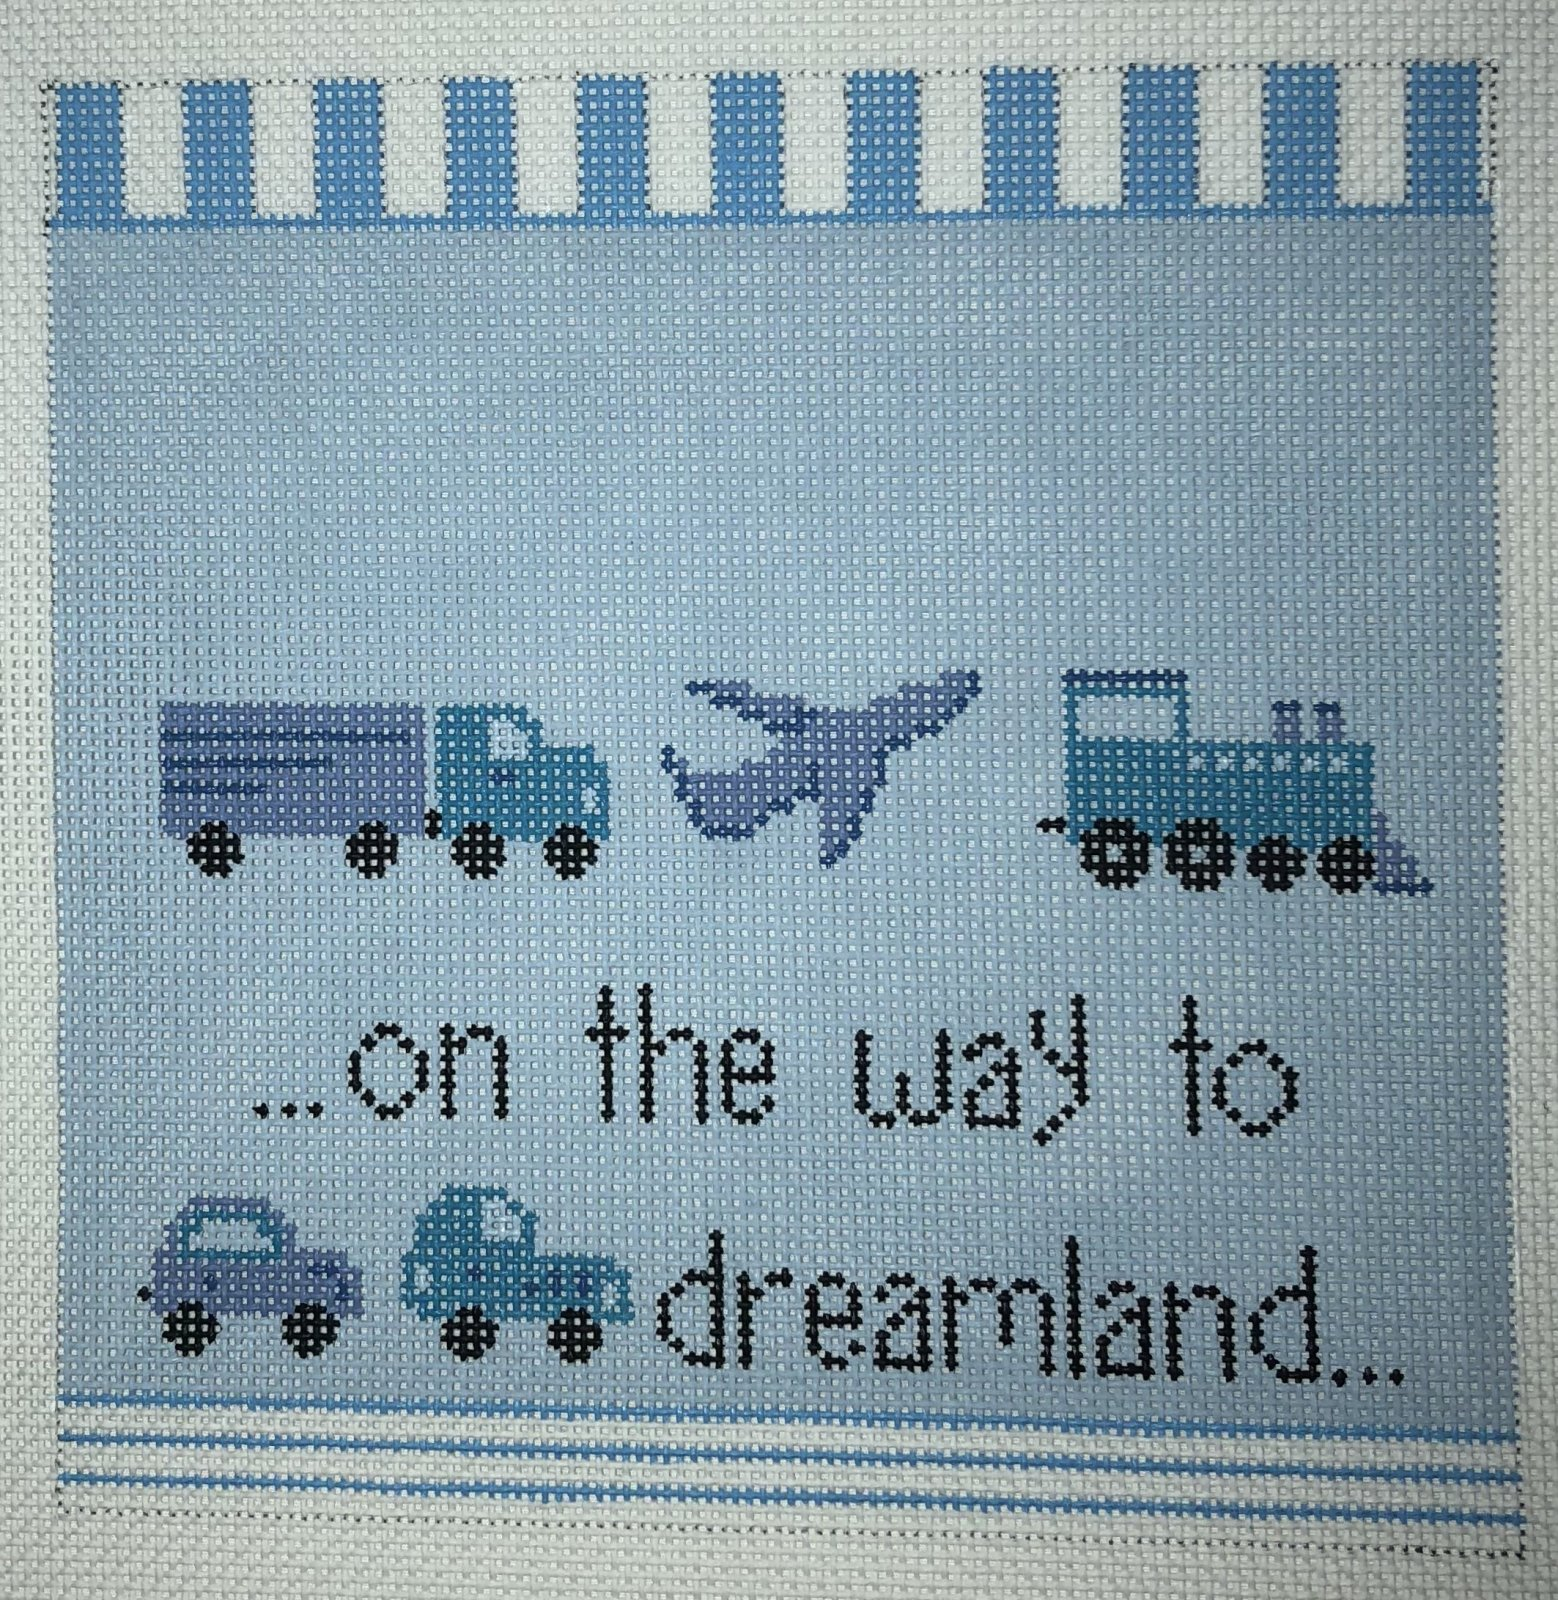 on the way to dreamland